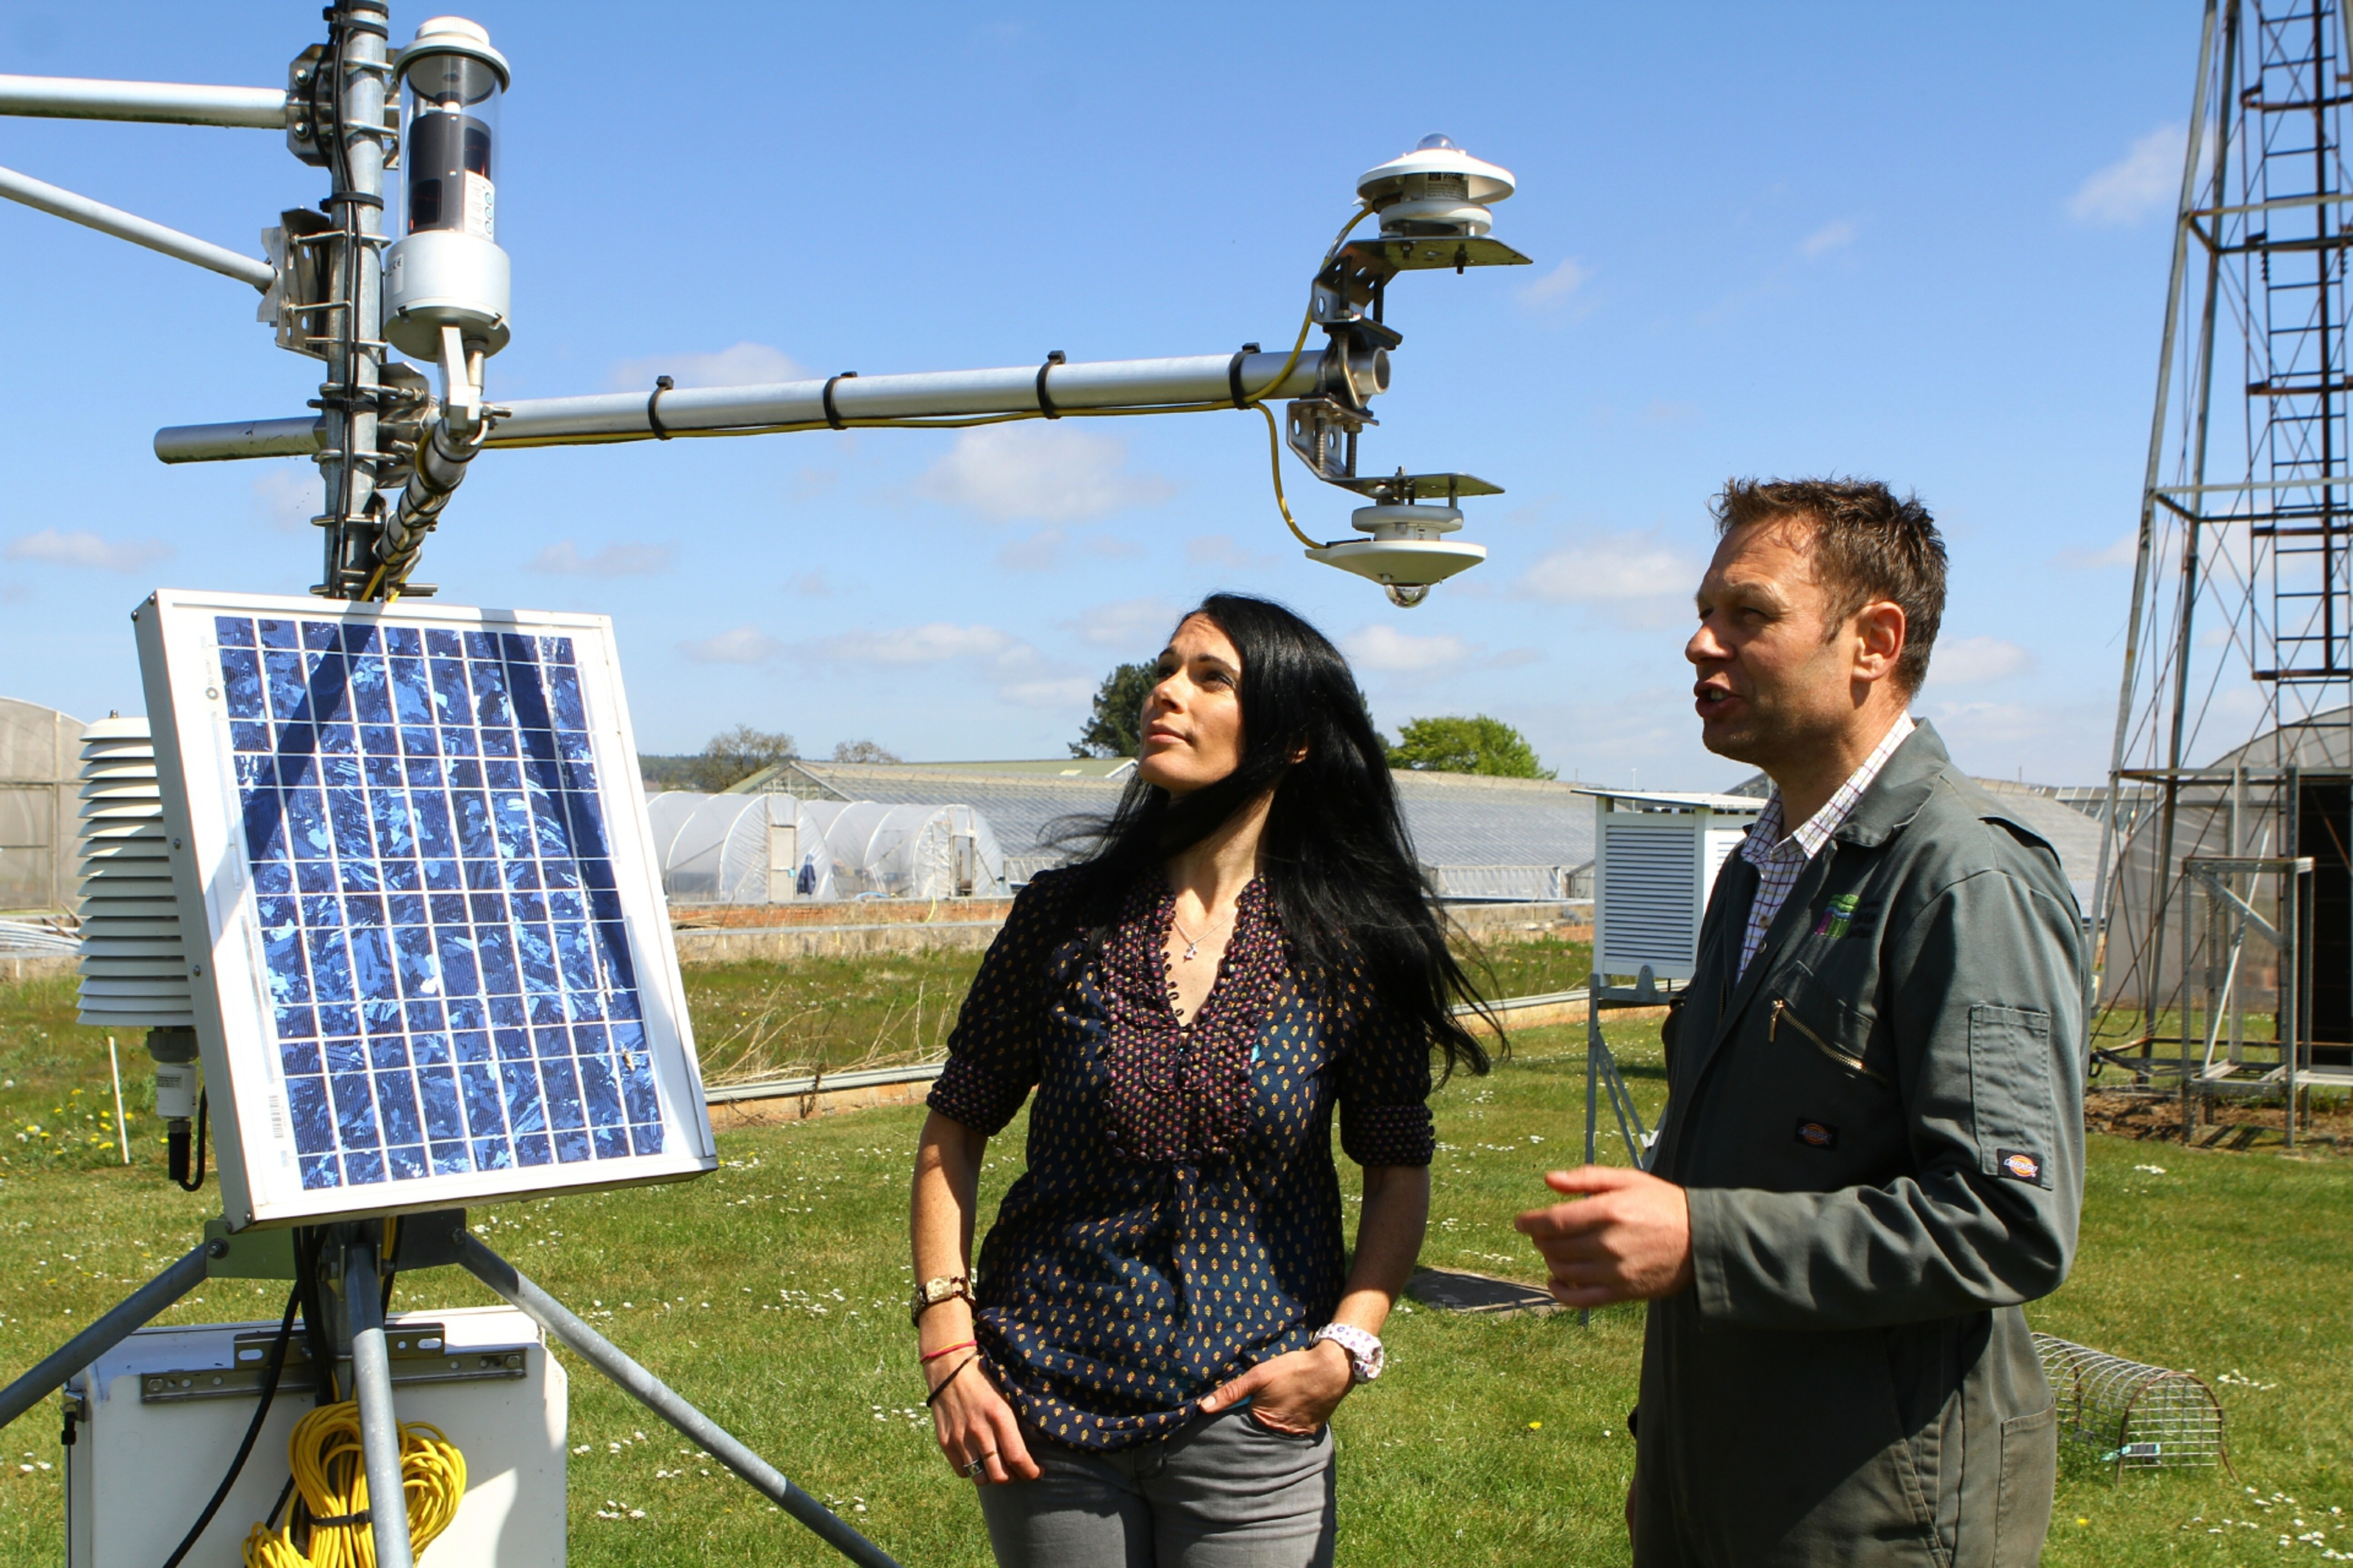 Euan Caldwell shows Gayle Ritchie some of the meteorological instruments.